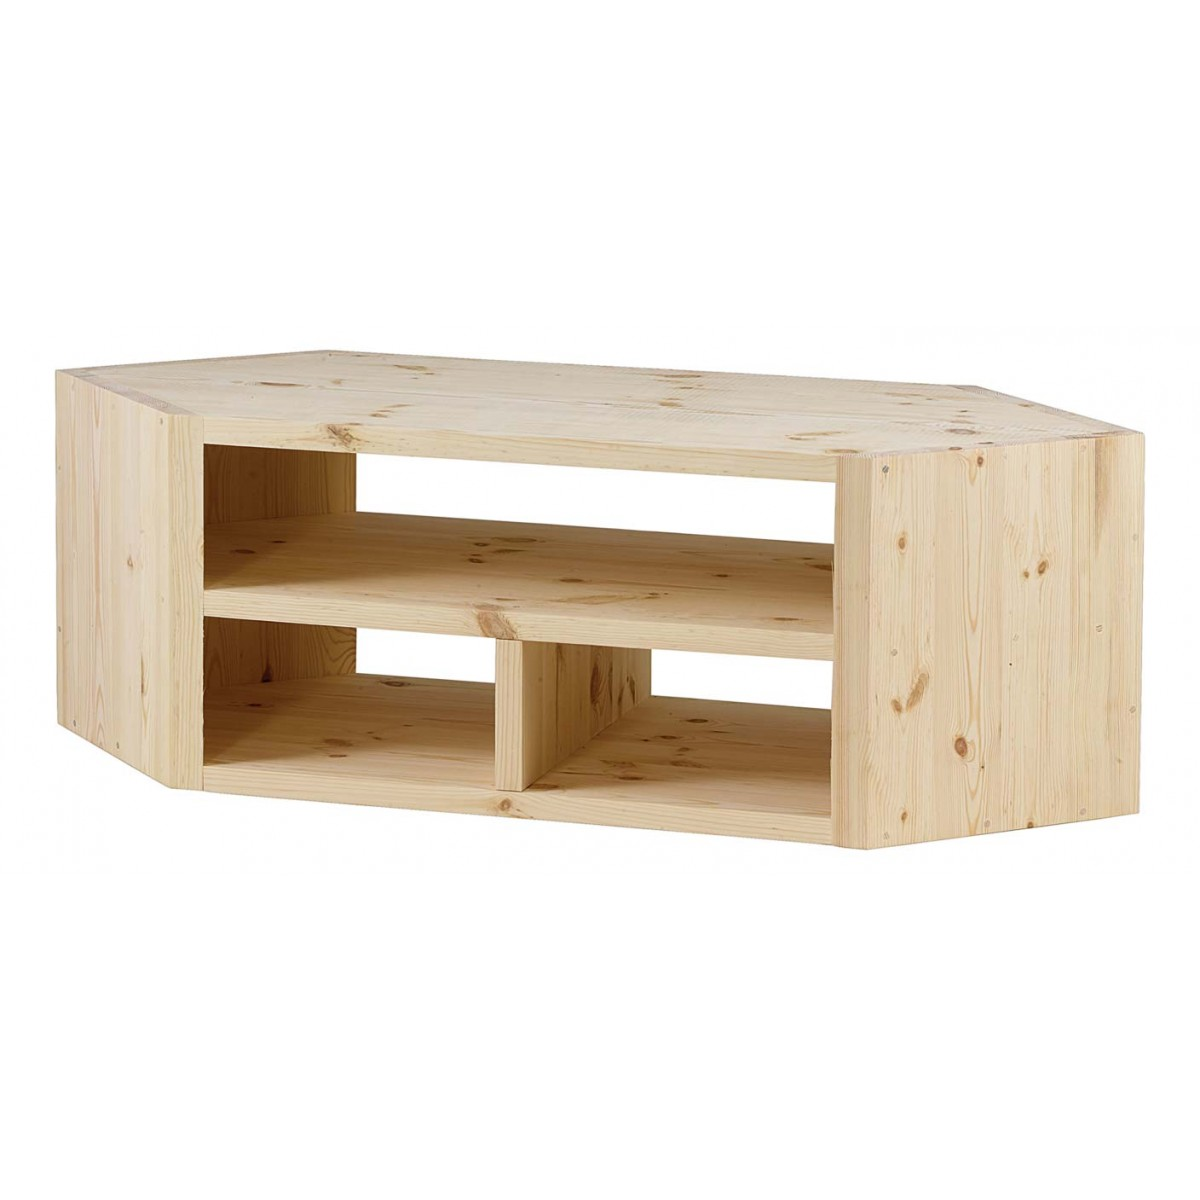 Meuble tv d 39 angle design pin massif brut 3 niches - Meuble tv d angle en bois ...